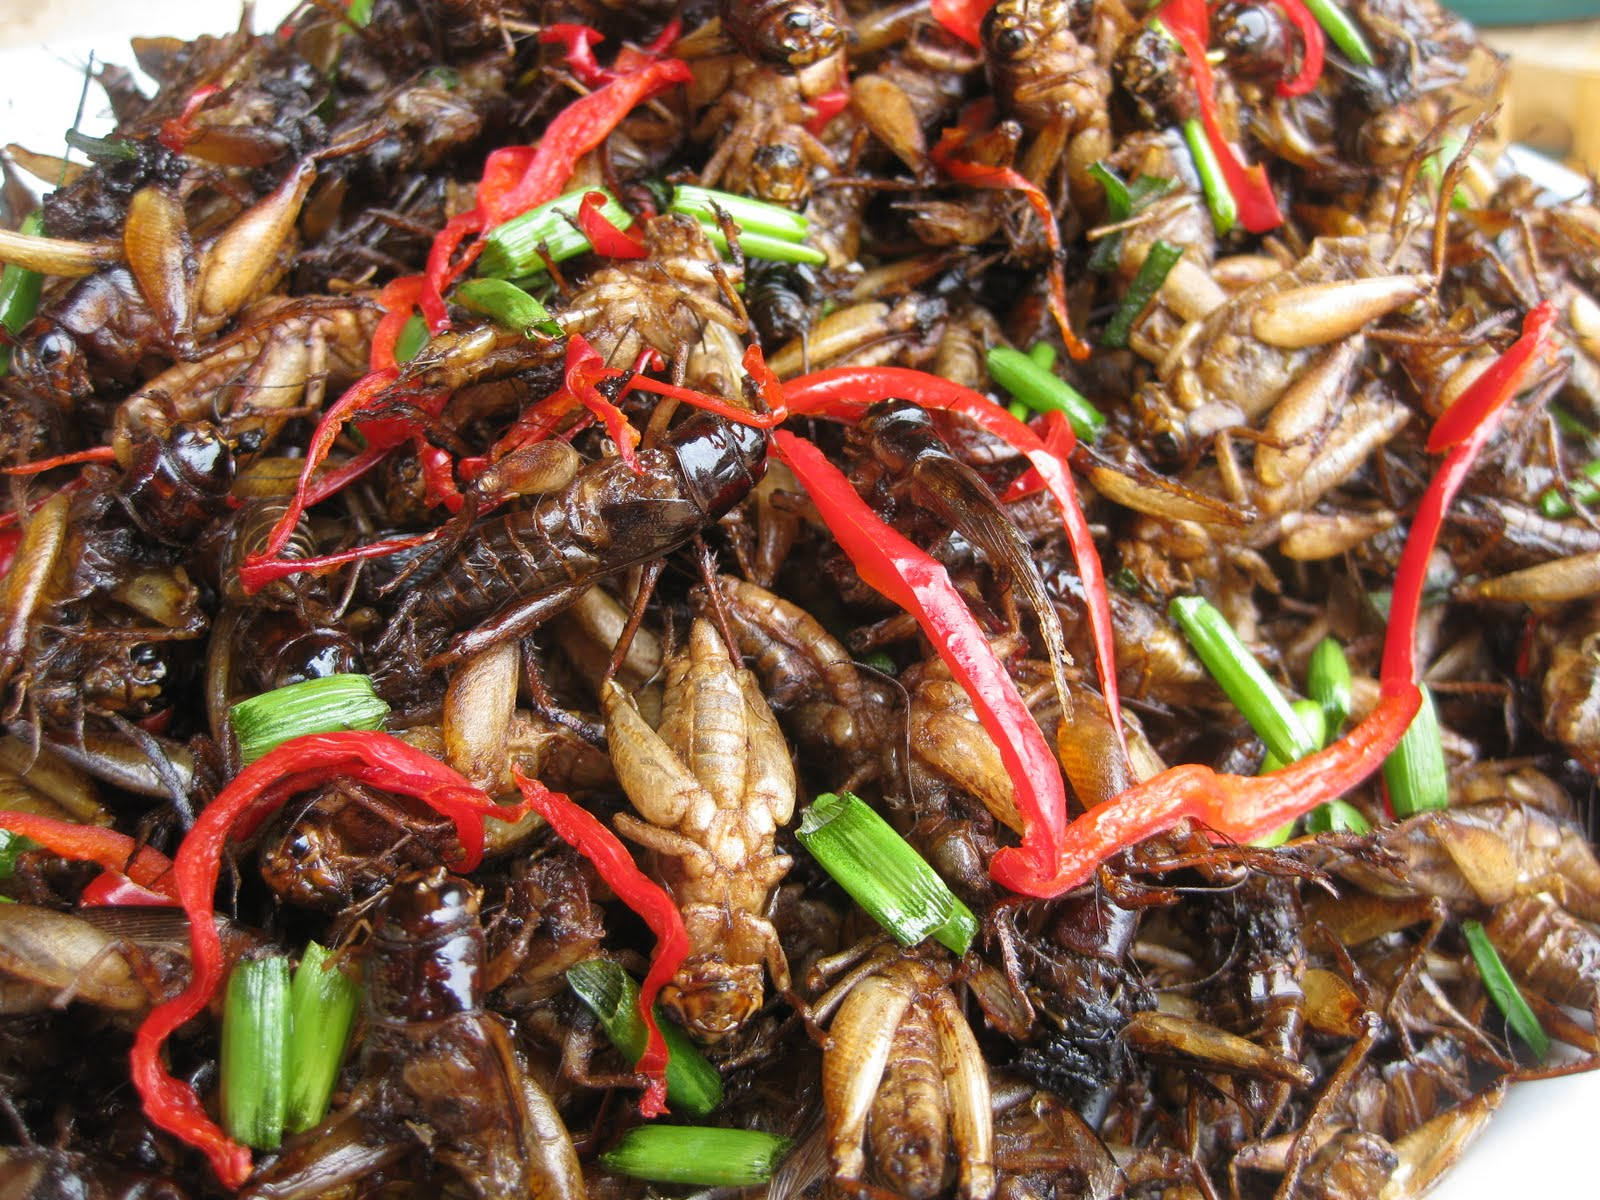 a pile of crickets